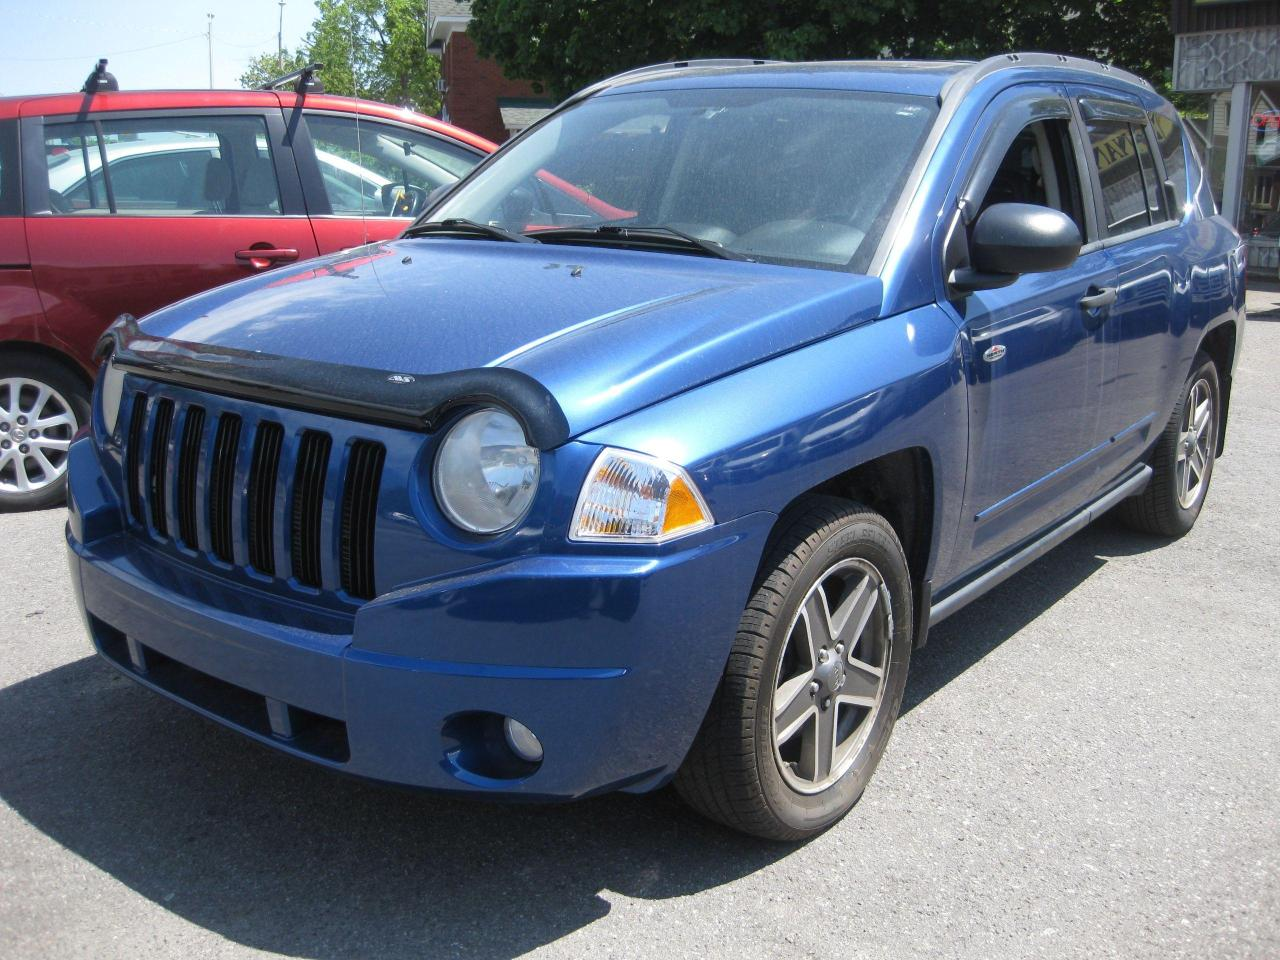 2009 Jeep Compass Rocky Mountain 2.4l 4Cyl